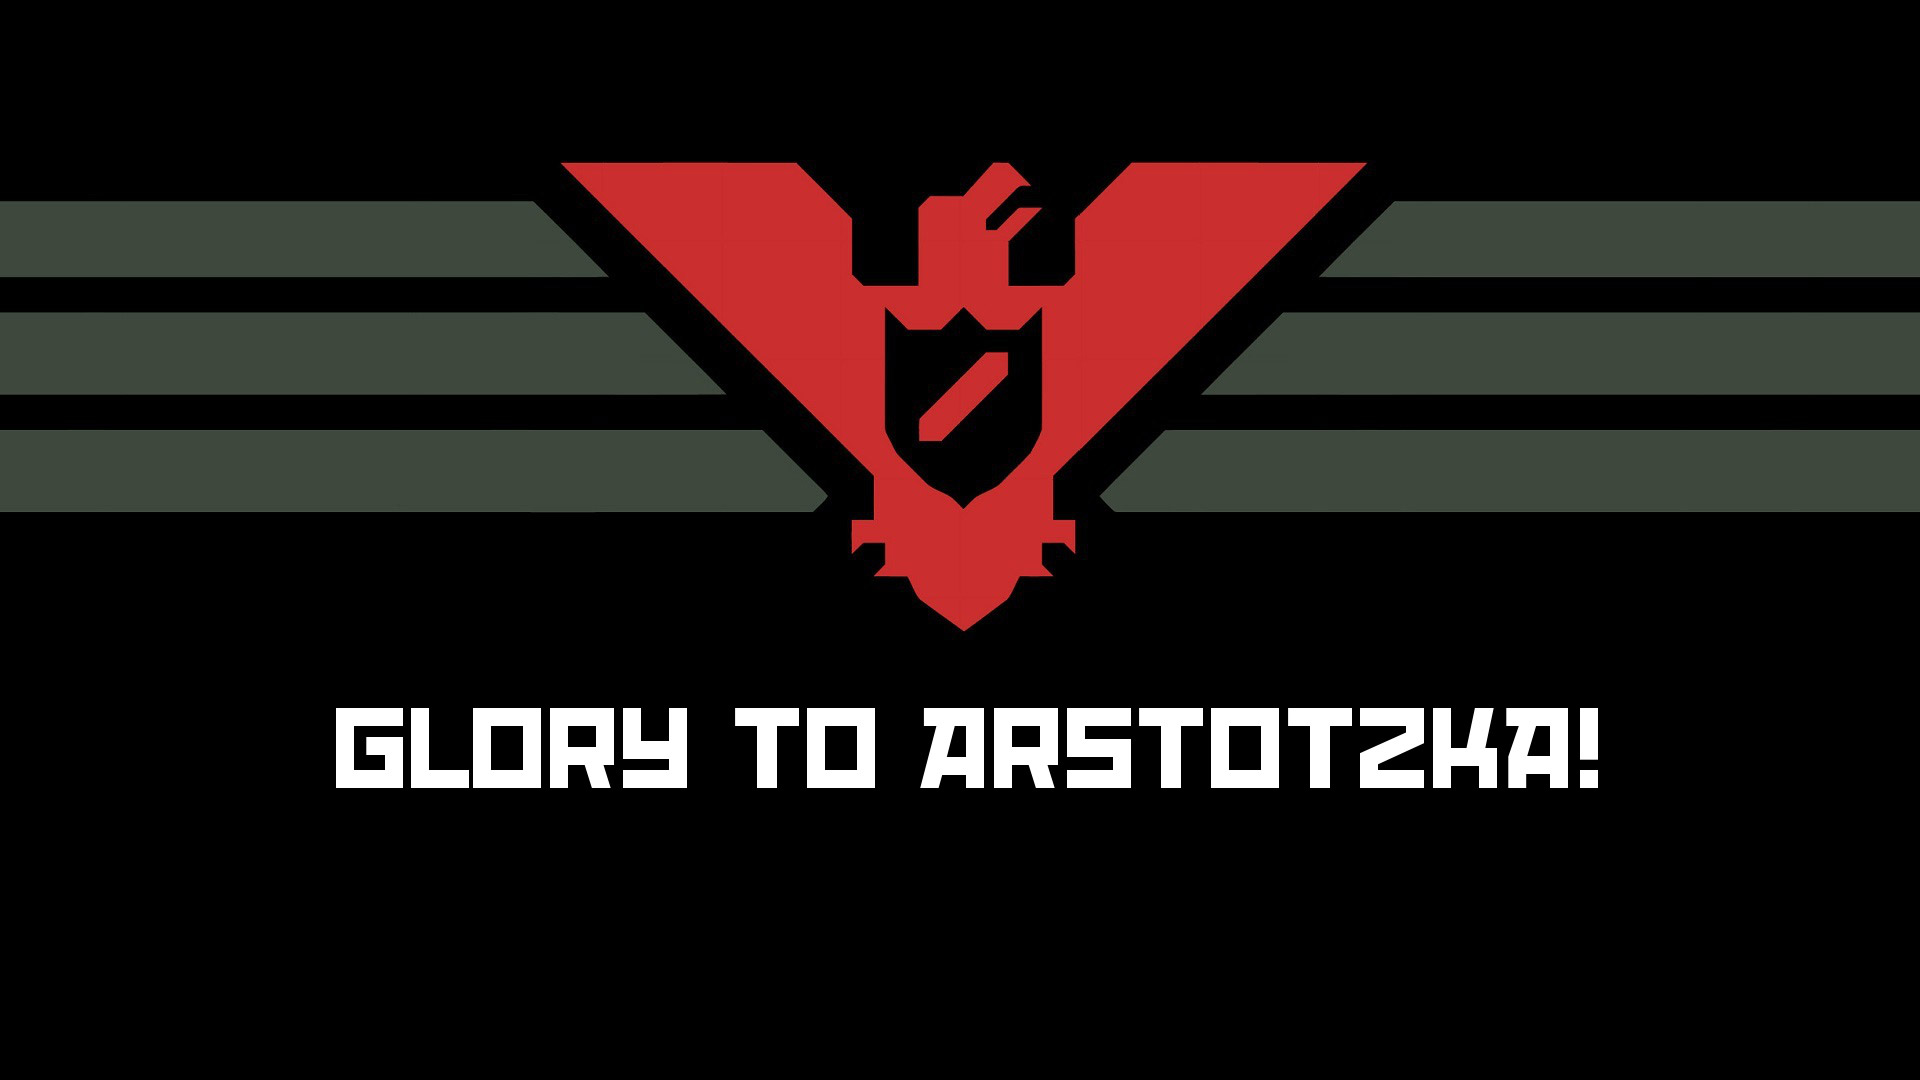 Free Papers, Please Wallpaper in 1920x1080